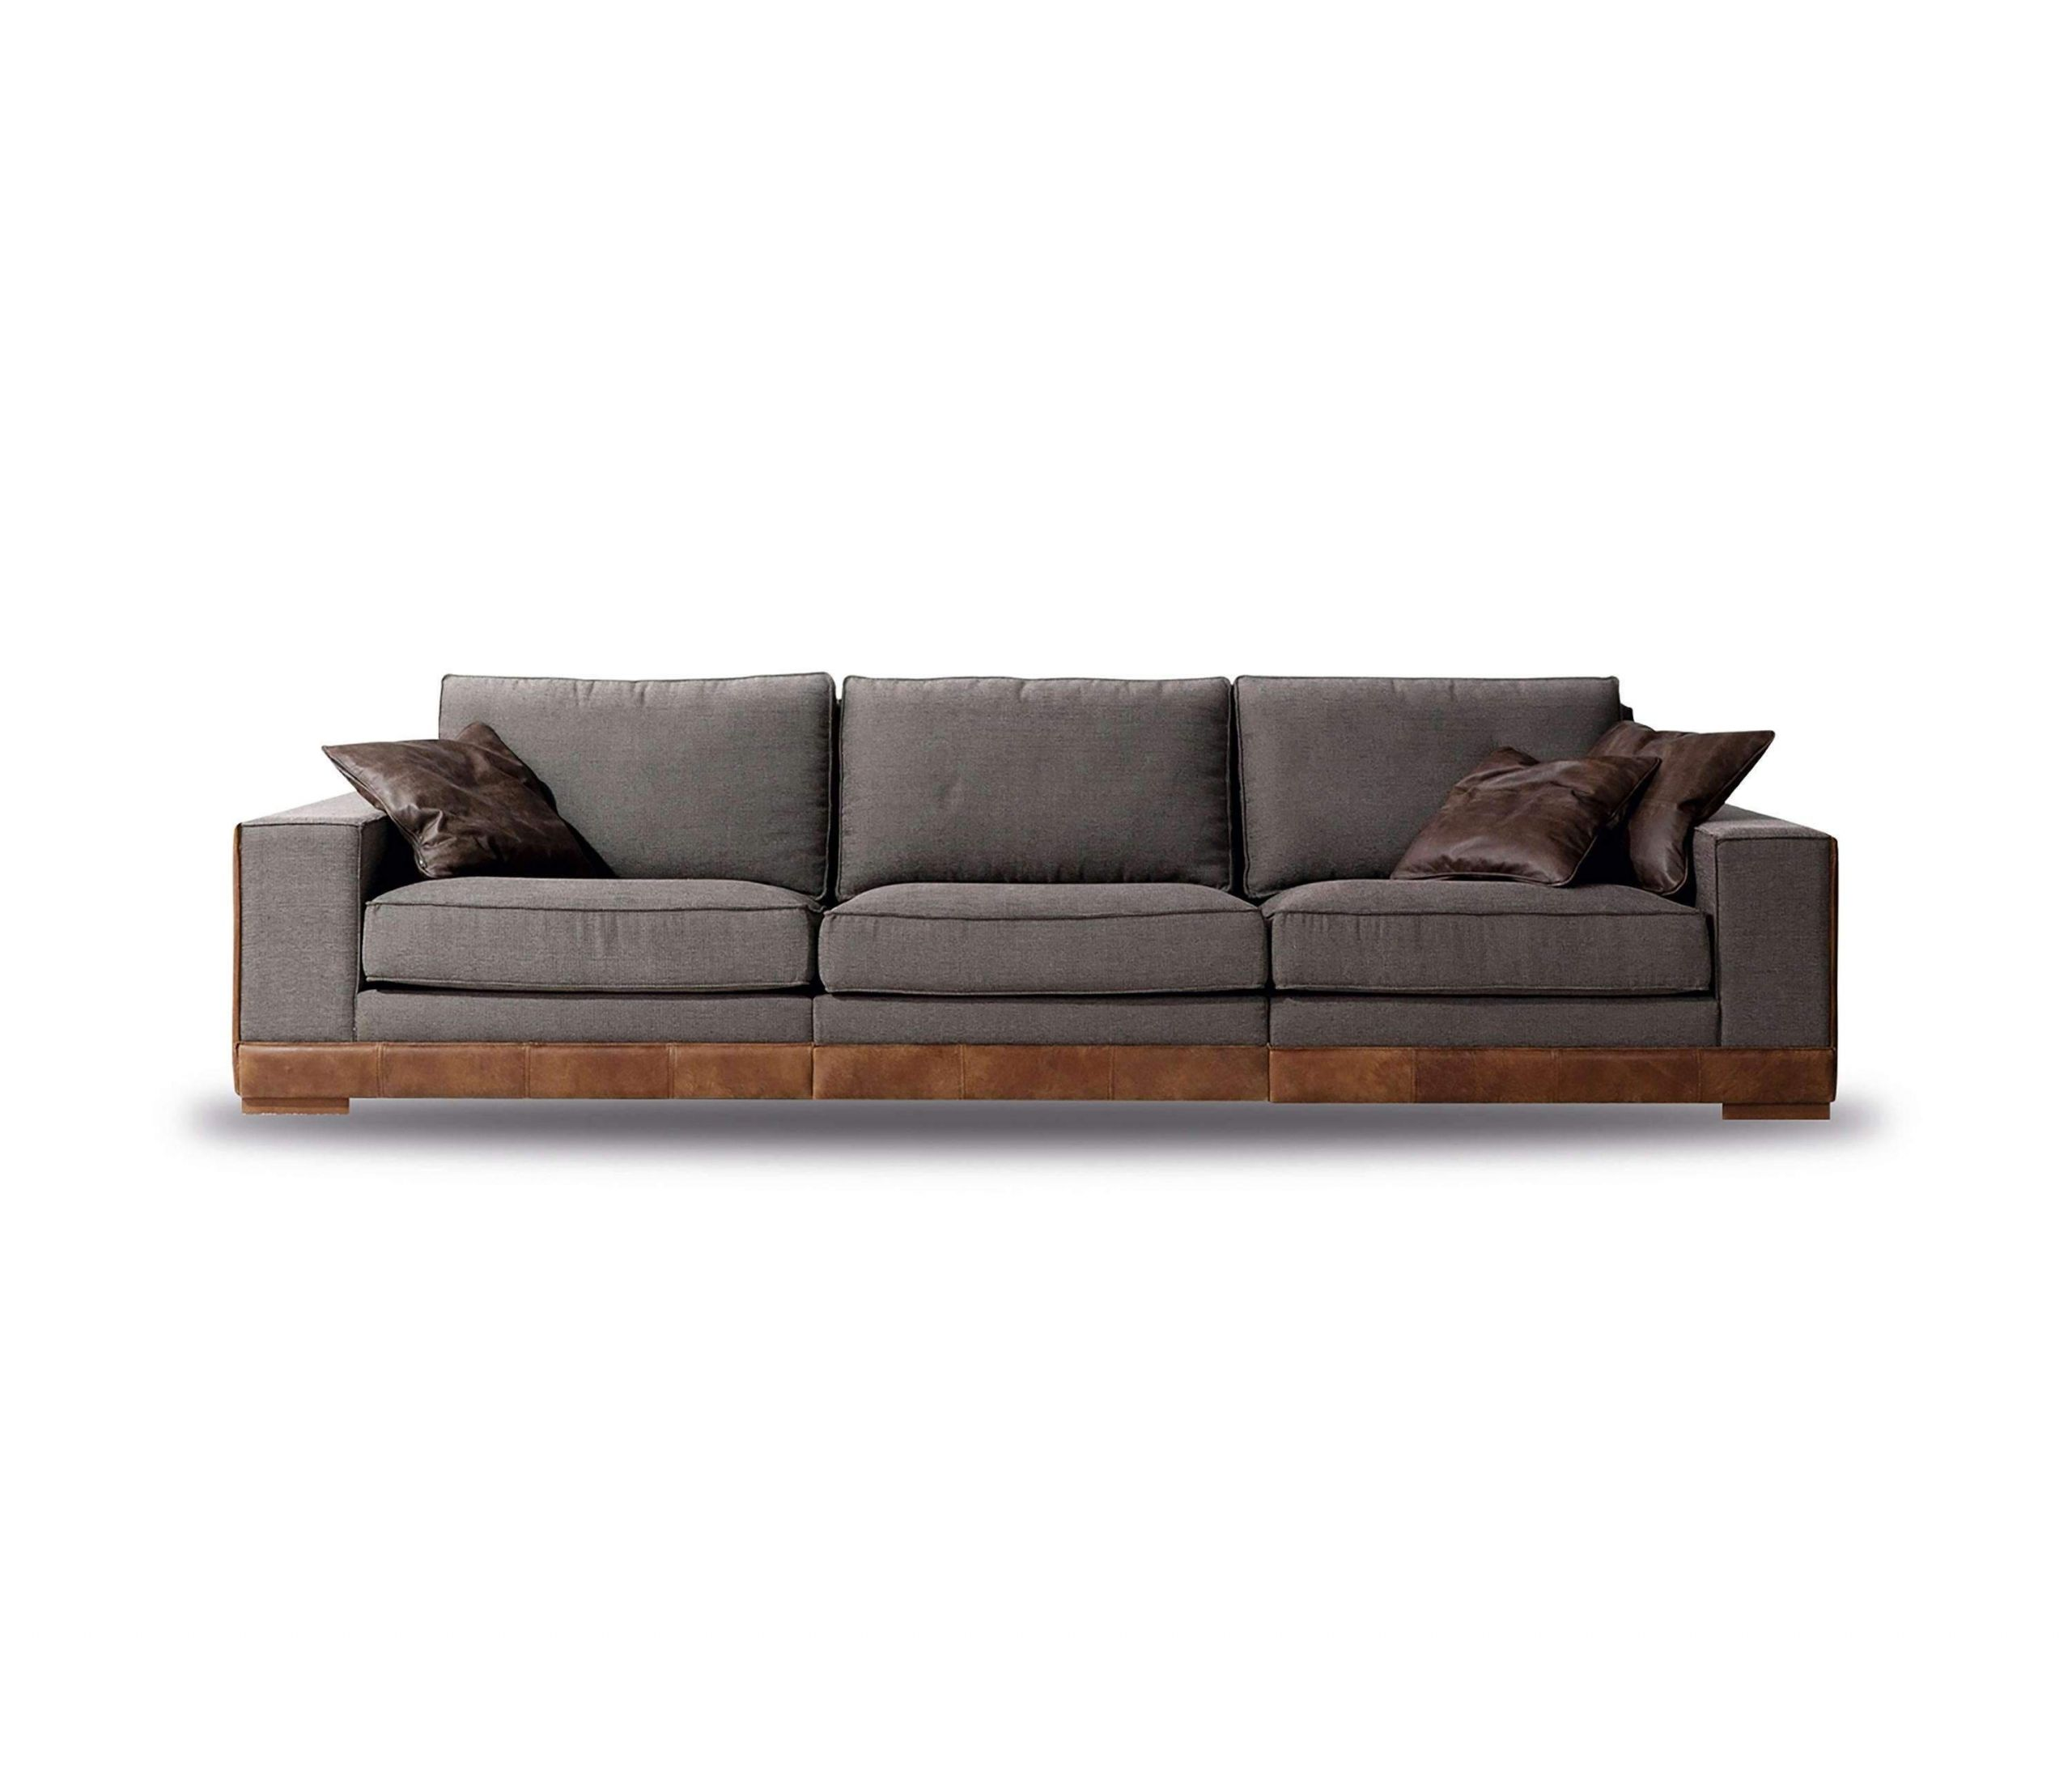 couch mit 2 sesseln awesome sessel sofa schon tantra sofa 0d galerie of sessel mit liegefunktion